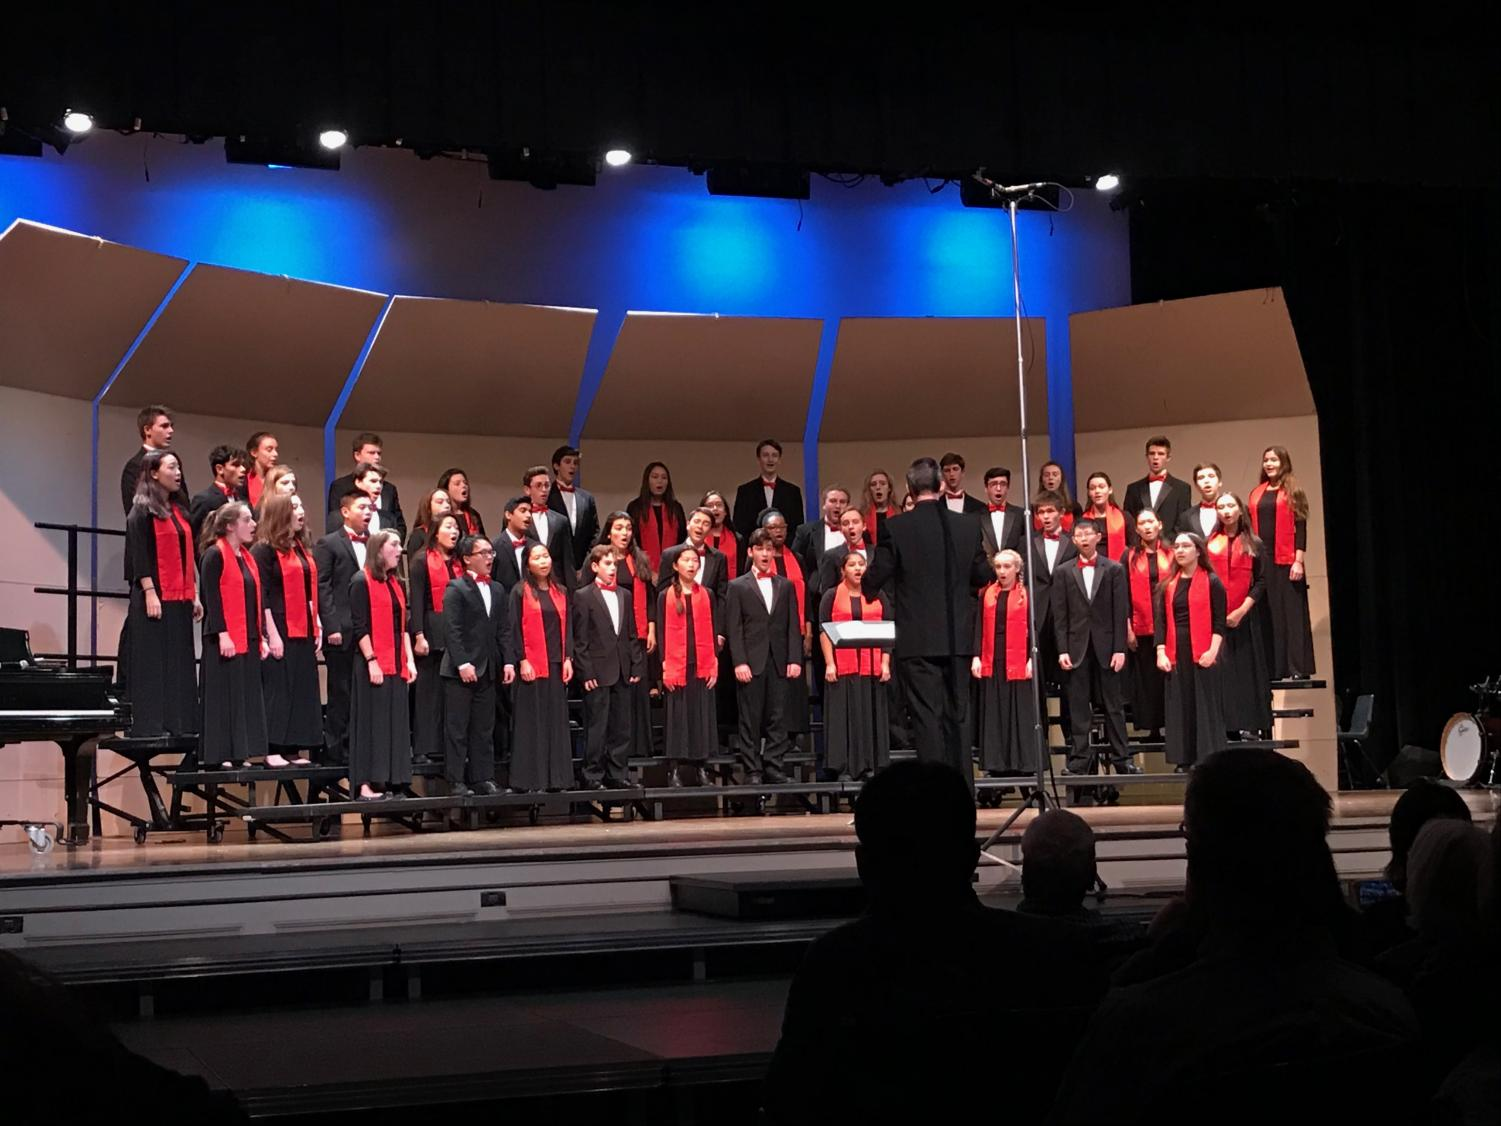 Camerata was one of the highlights of the 2017 Winter Concert in the Robert-Dubbs Auditorium. Their performance was  forceful and soul-filling.